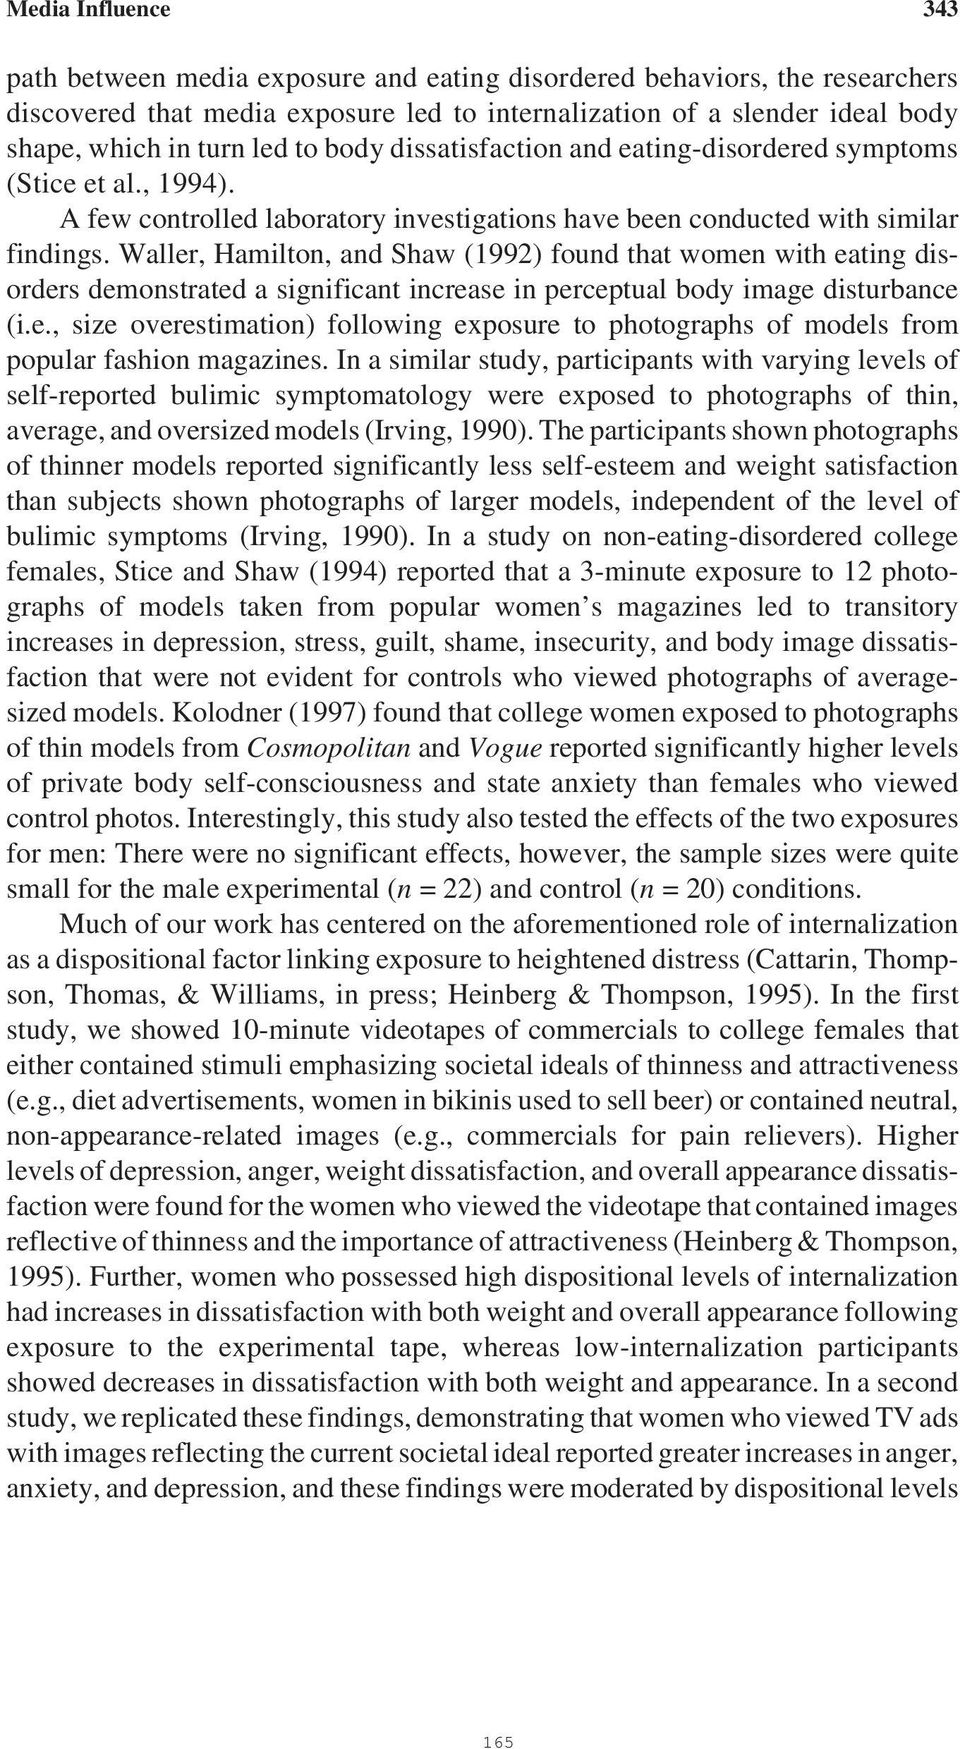 Waller, Hamilton, and Shaw (1992) found that women with eating disorders demonstrated a significant increase in perceptual body image disturbance (i.e., size overestimation) following exposure to photographs of models from popular fashion magazines.